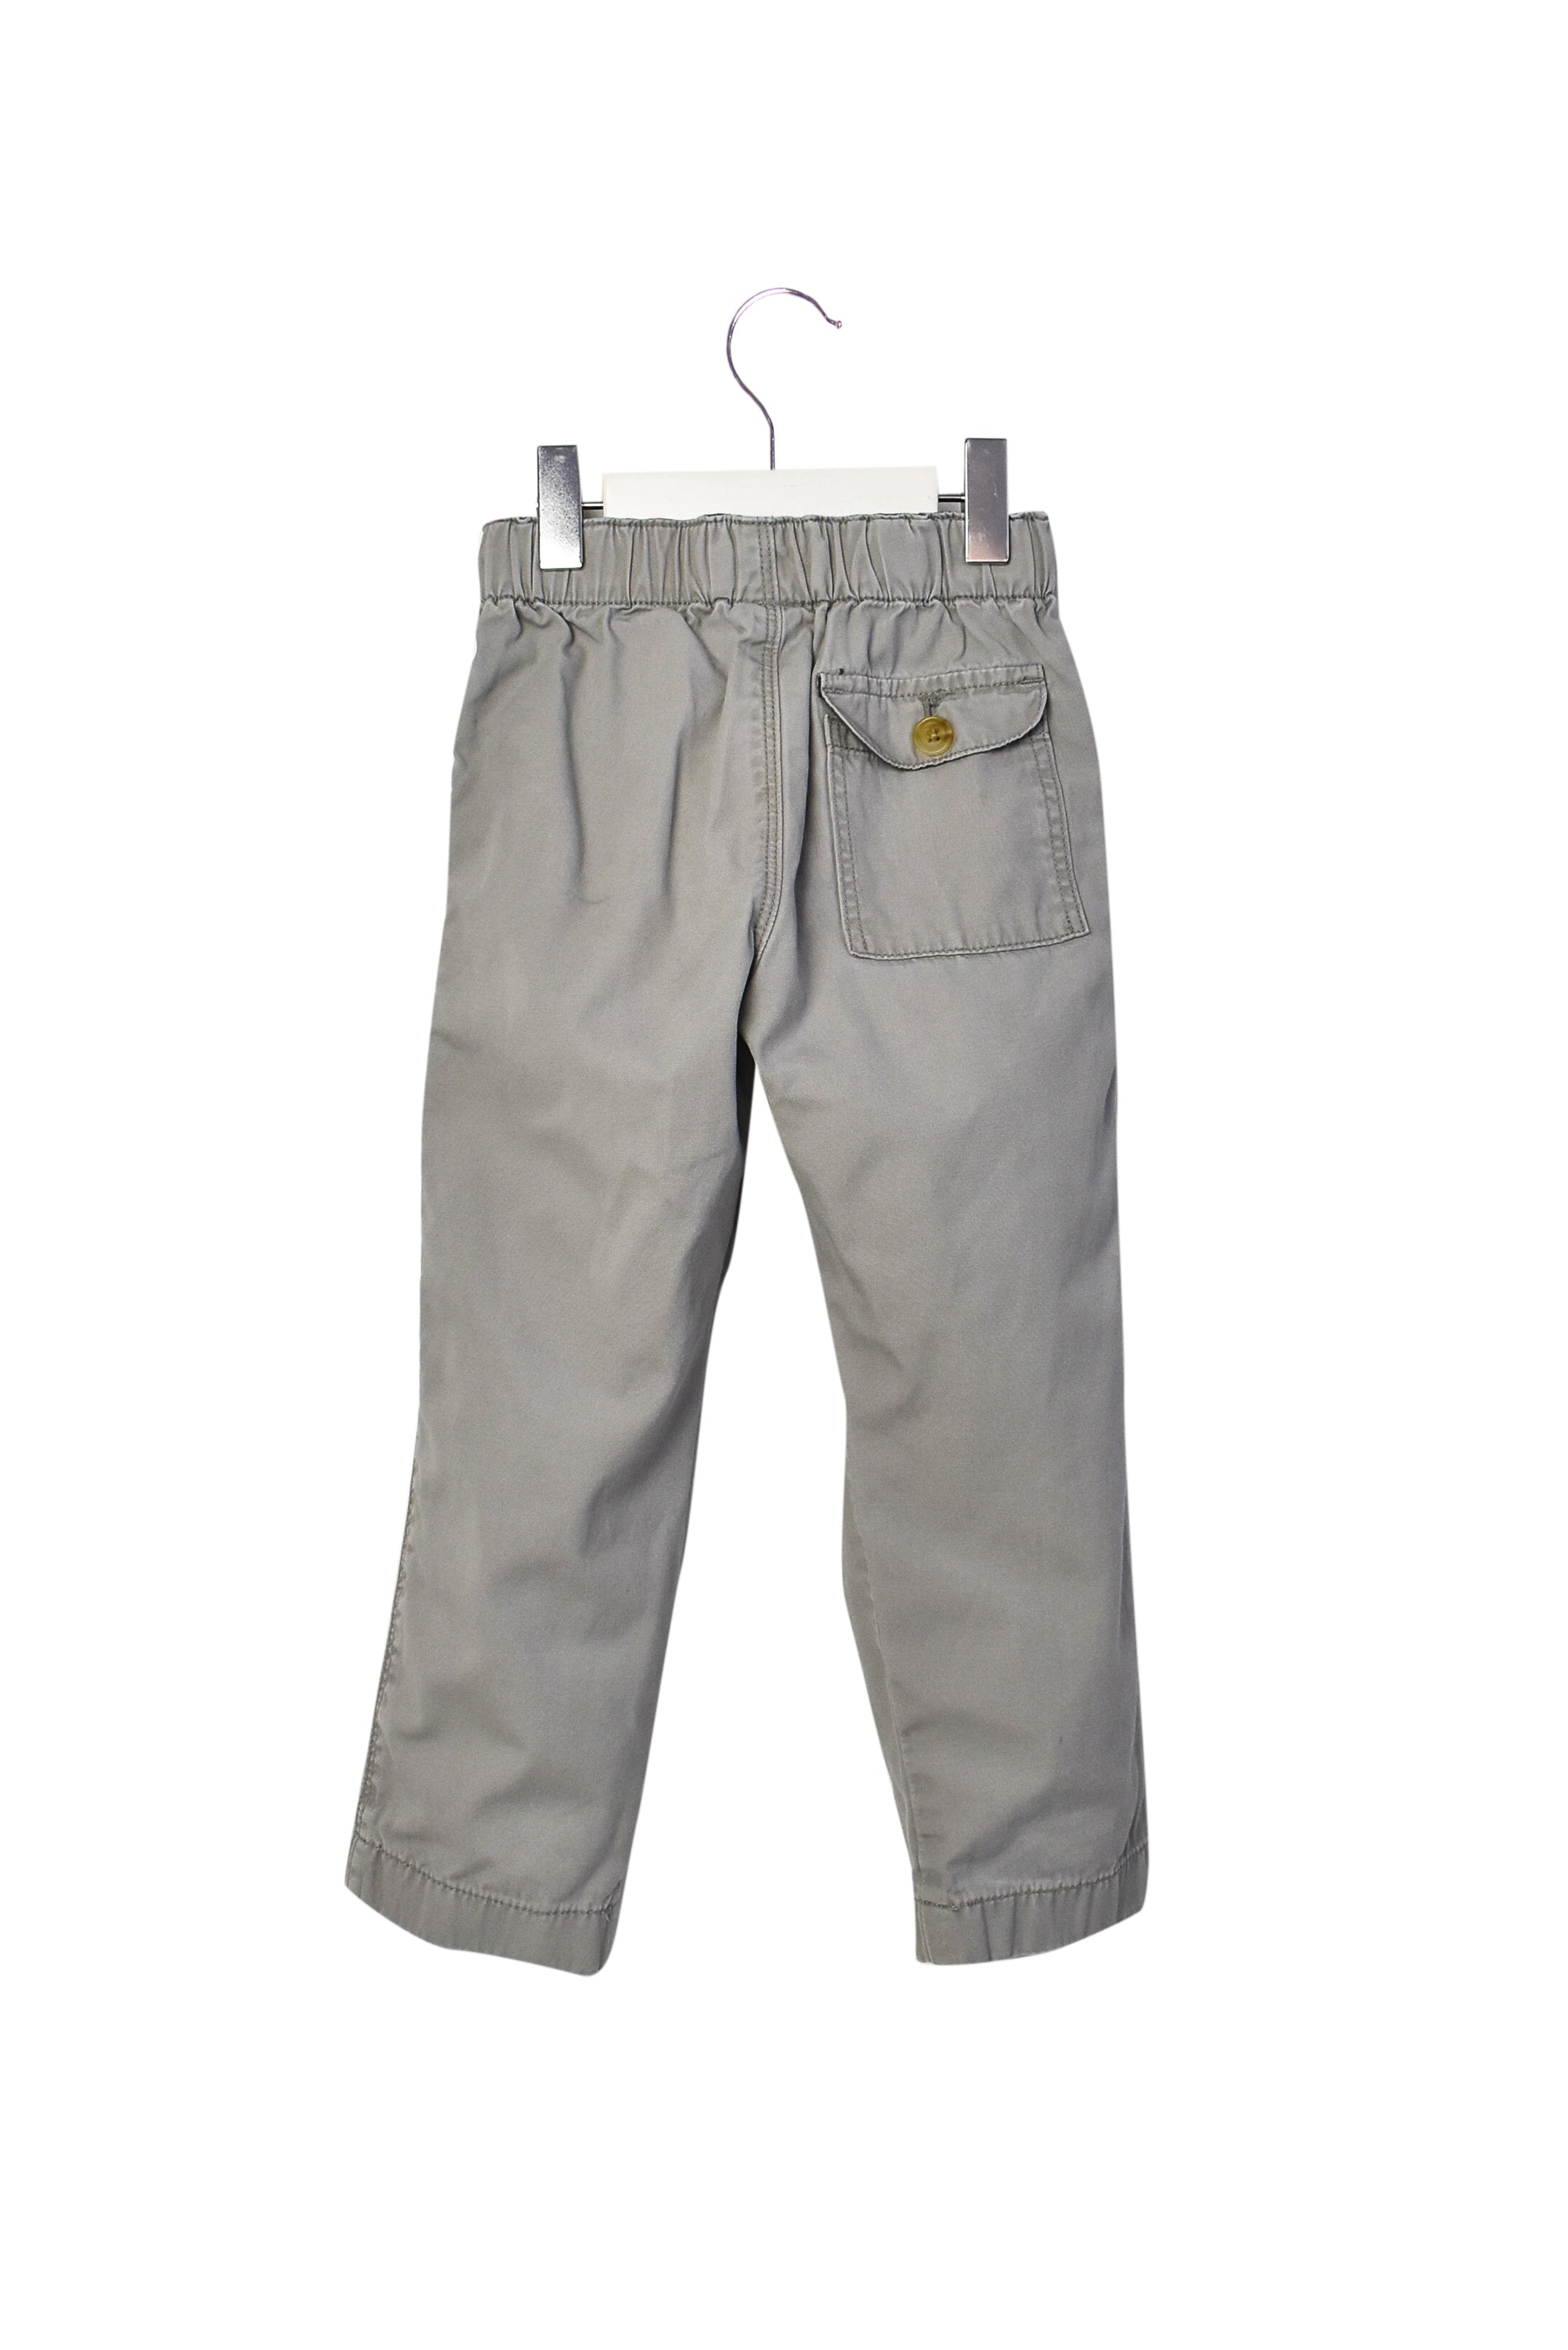 10006910 Crewcuts Kids~ Pants 3T at Retykle